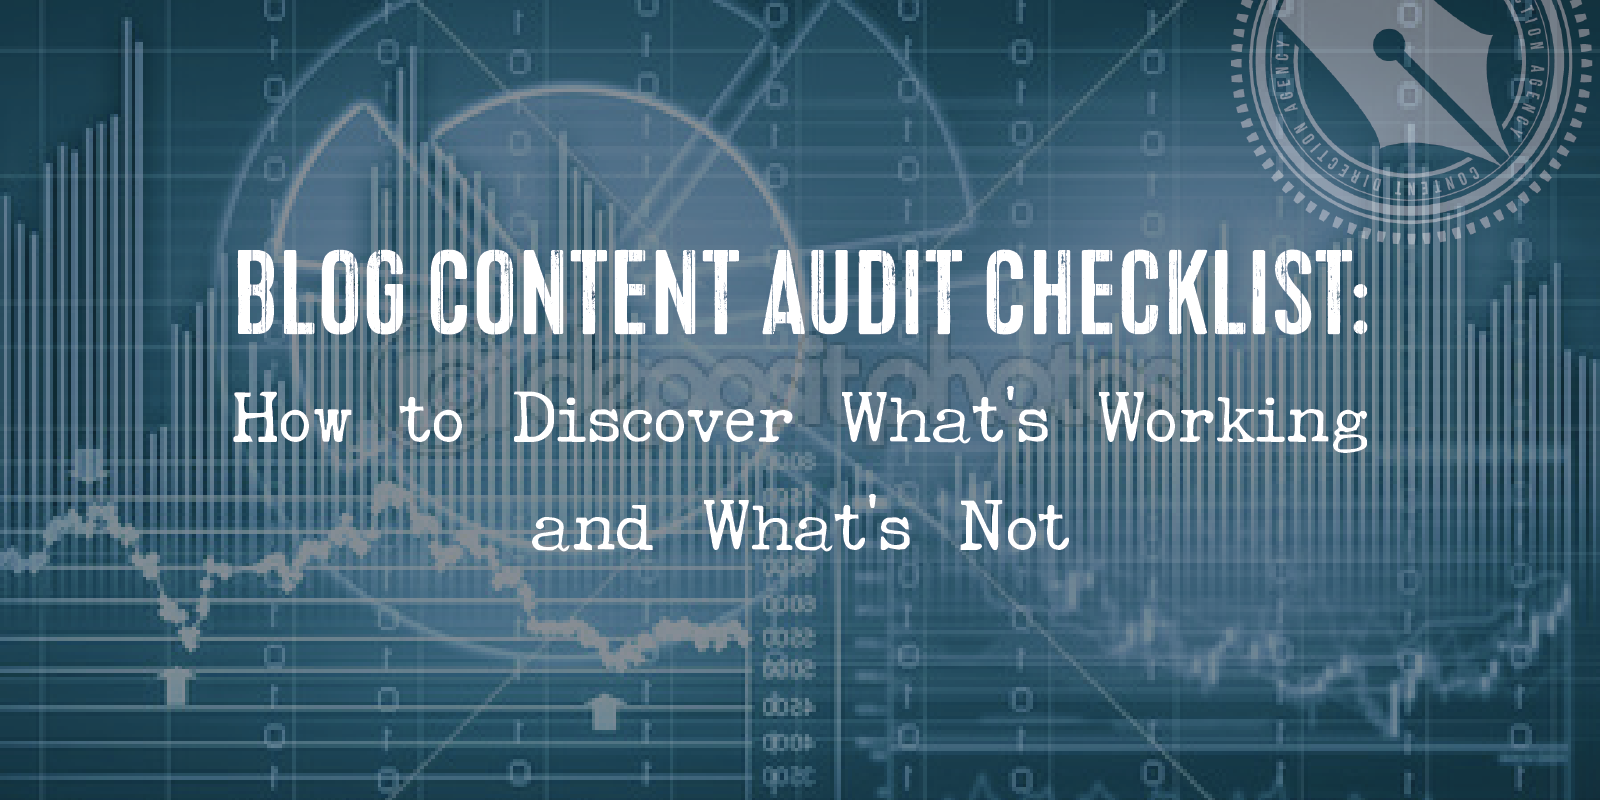 Blog Content Audit Checklist: How to Discover What's Working